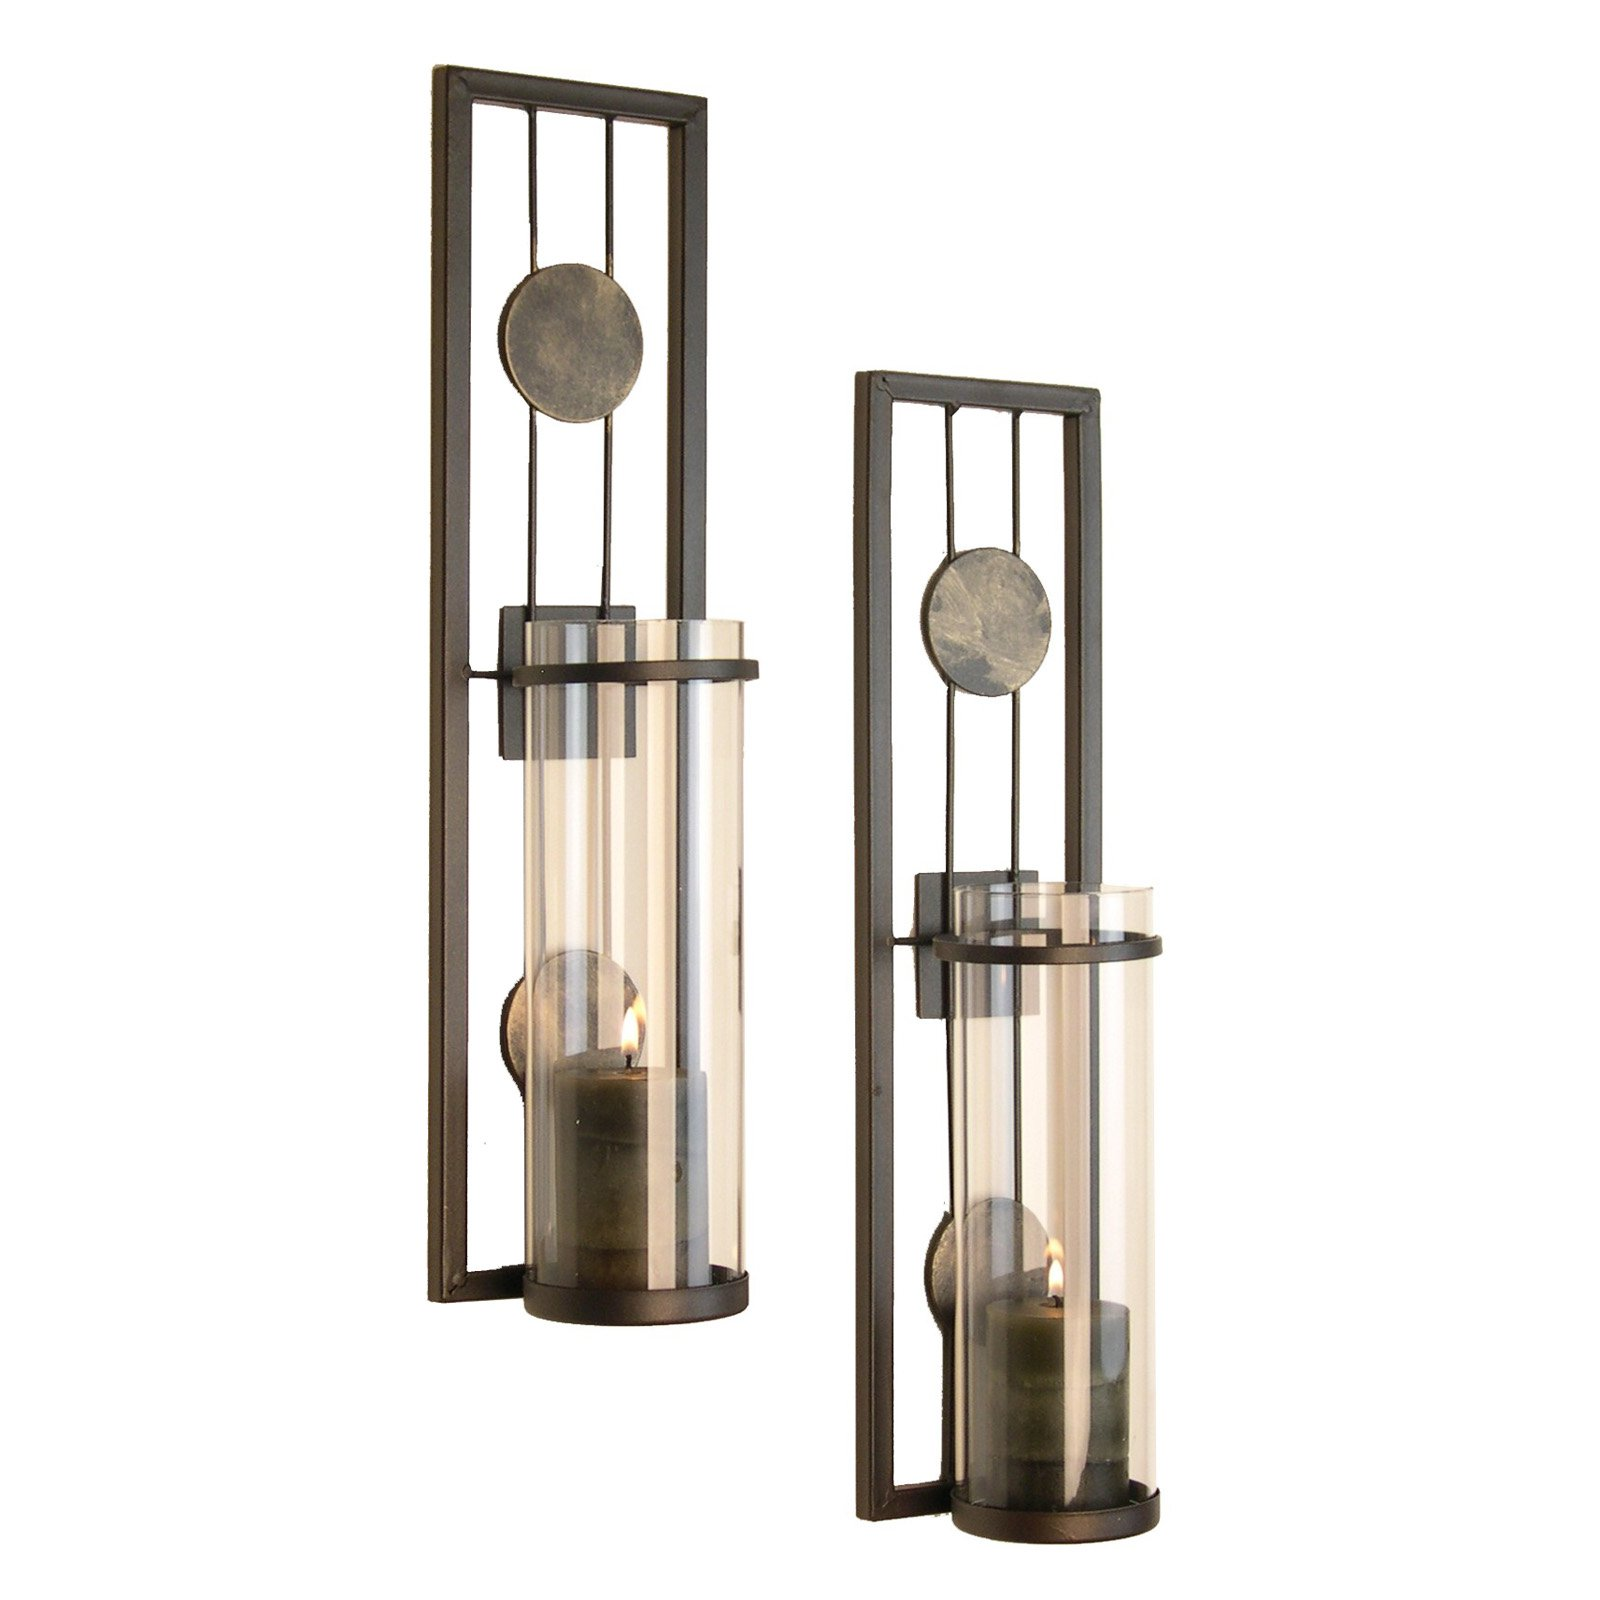 Danya B Contemporary Metal Wall Sconces With Antique Patina